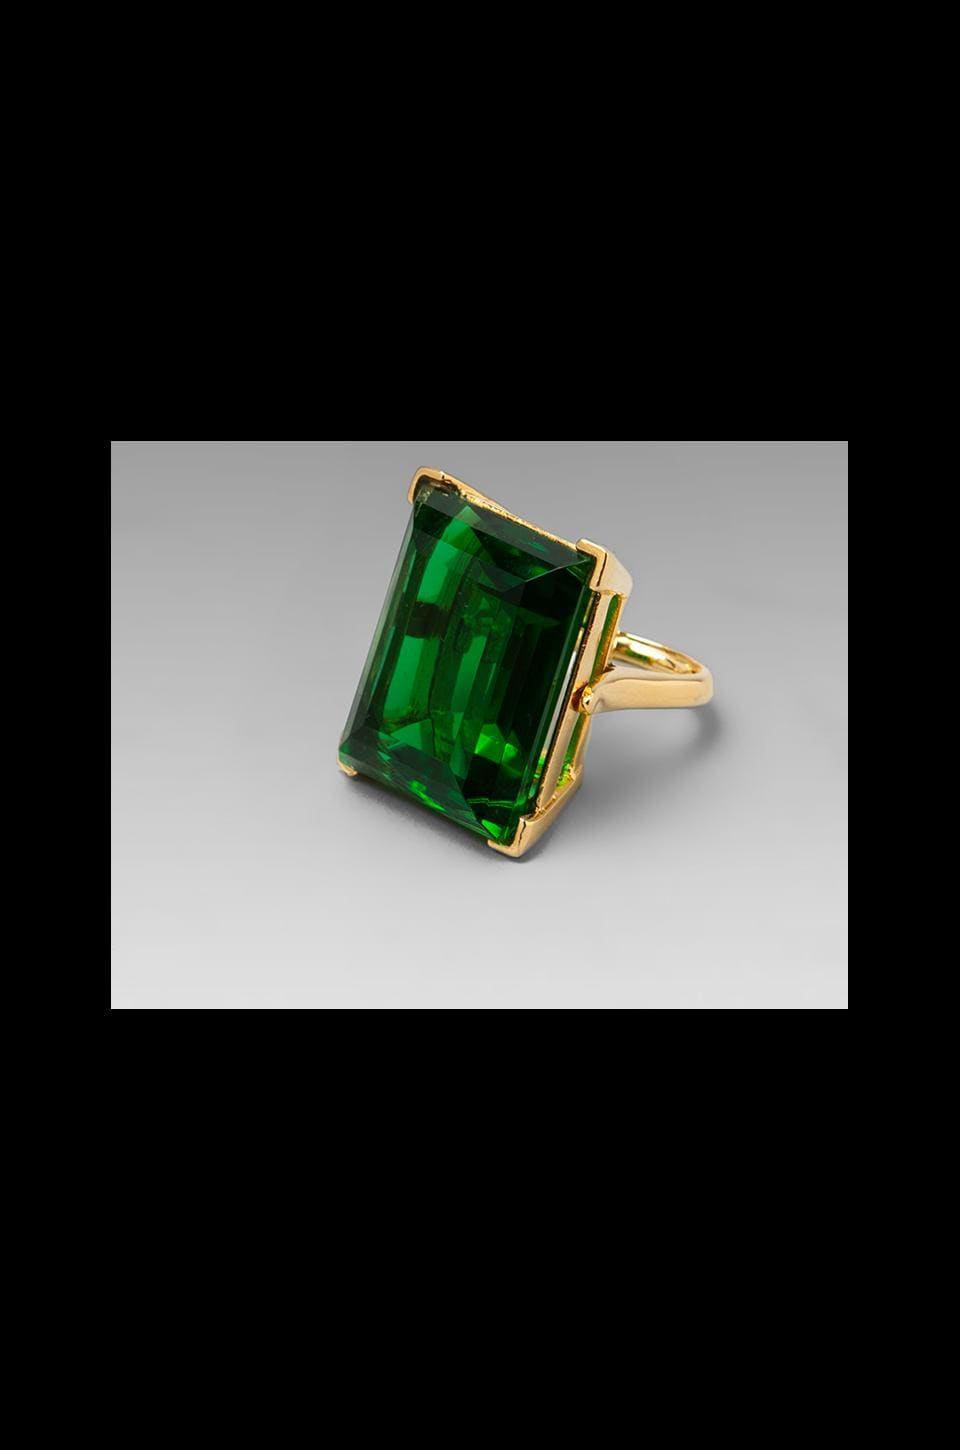 Kenneth Jay Lane Princess Cut Ring in Emerald